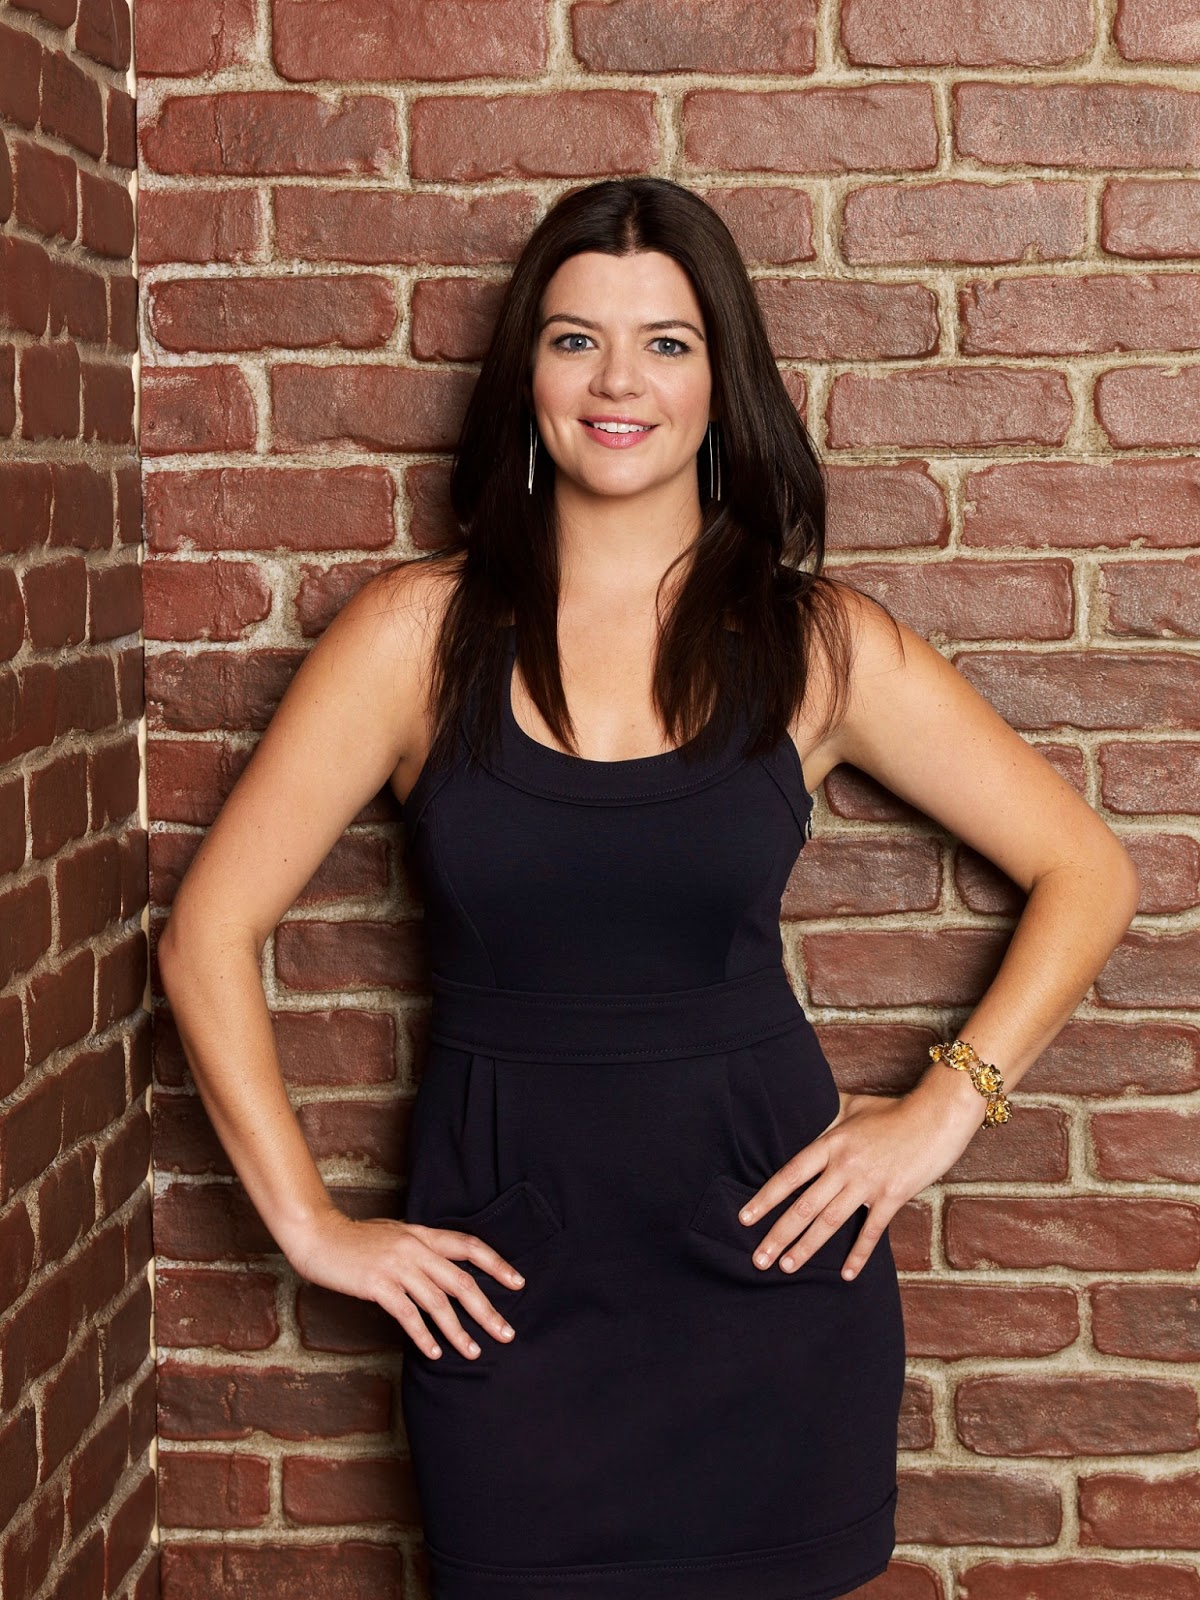 Hot Casey Wilson nudes (74 photo), Topless, Cleavage, Boobs, swimsuit 2019